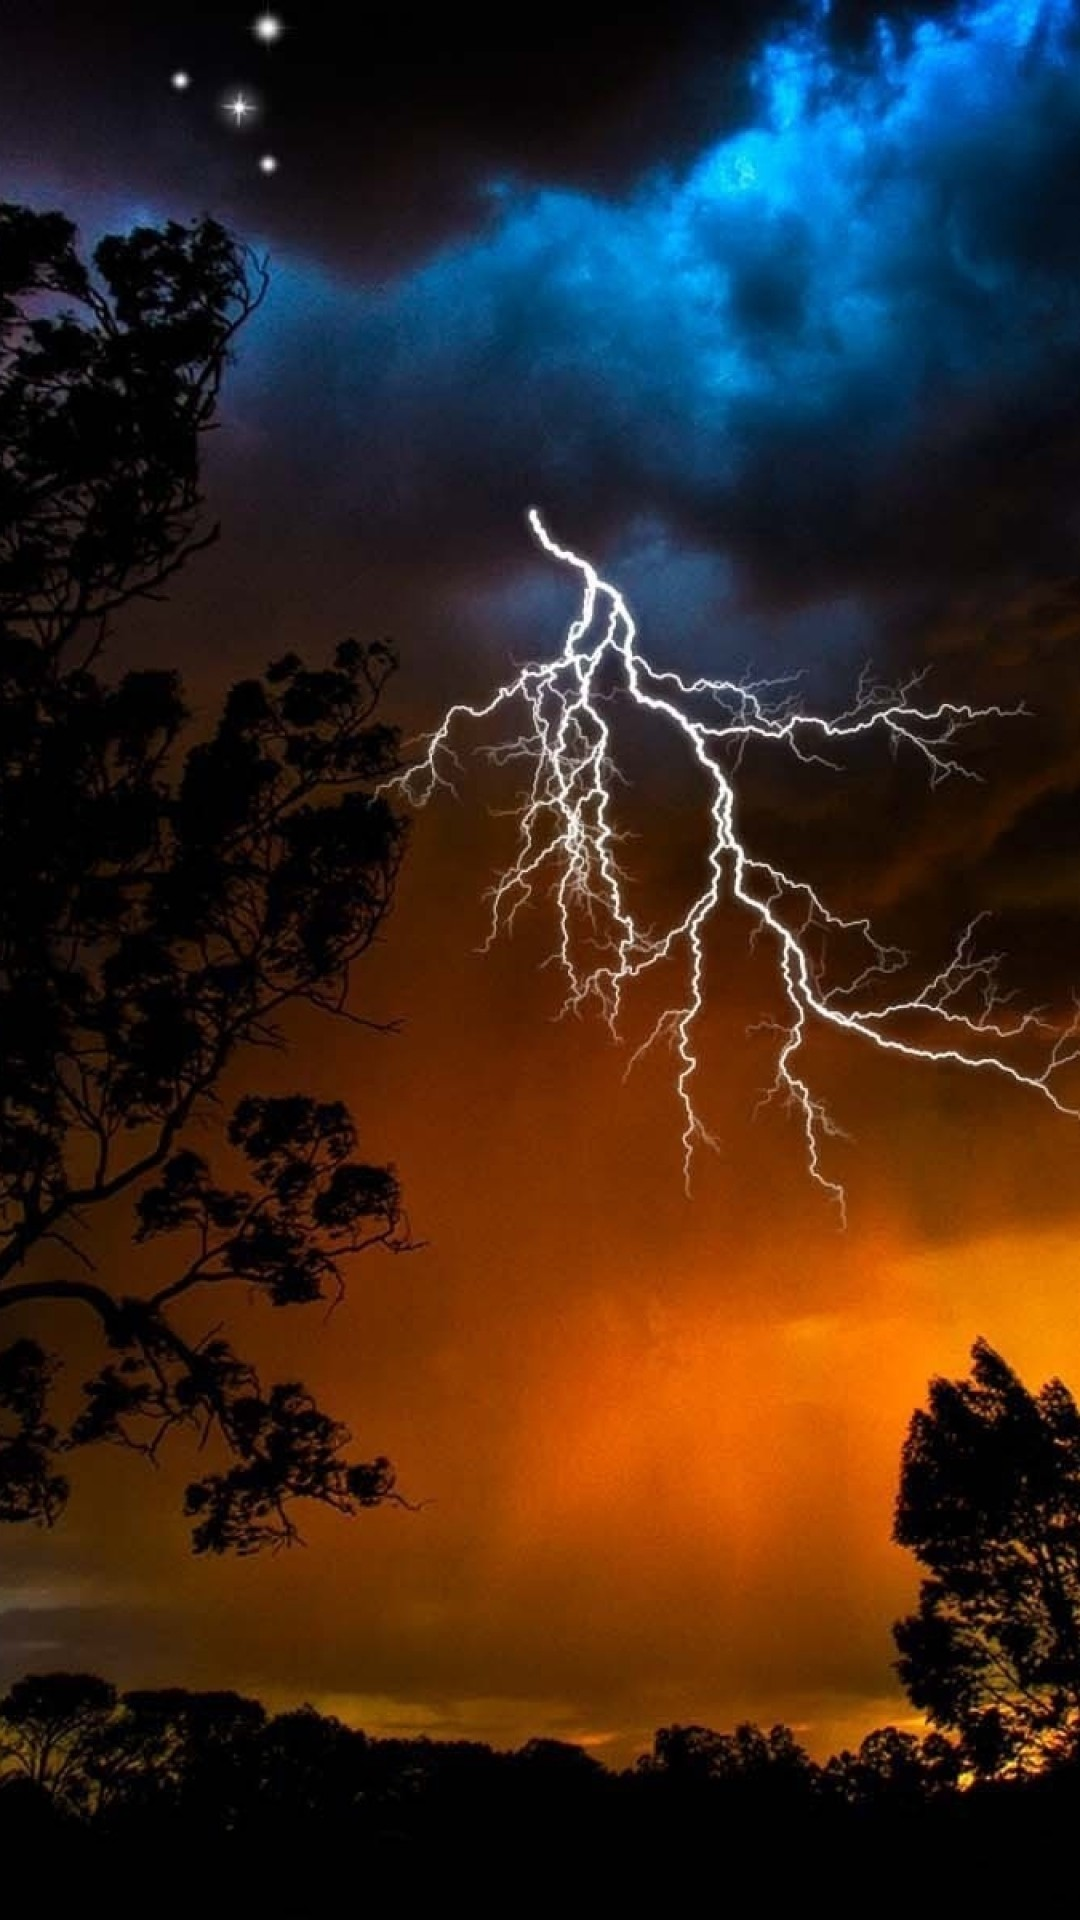 Lightning Wallpapers HD Android Apps on Google Play   HD Wallpapers    Pinterest   Hd wallpaper and Wallpaper